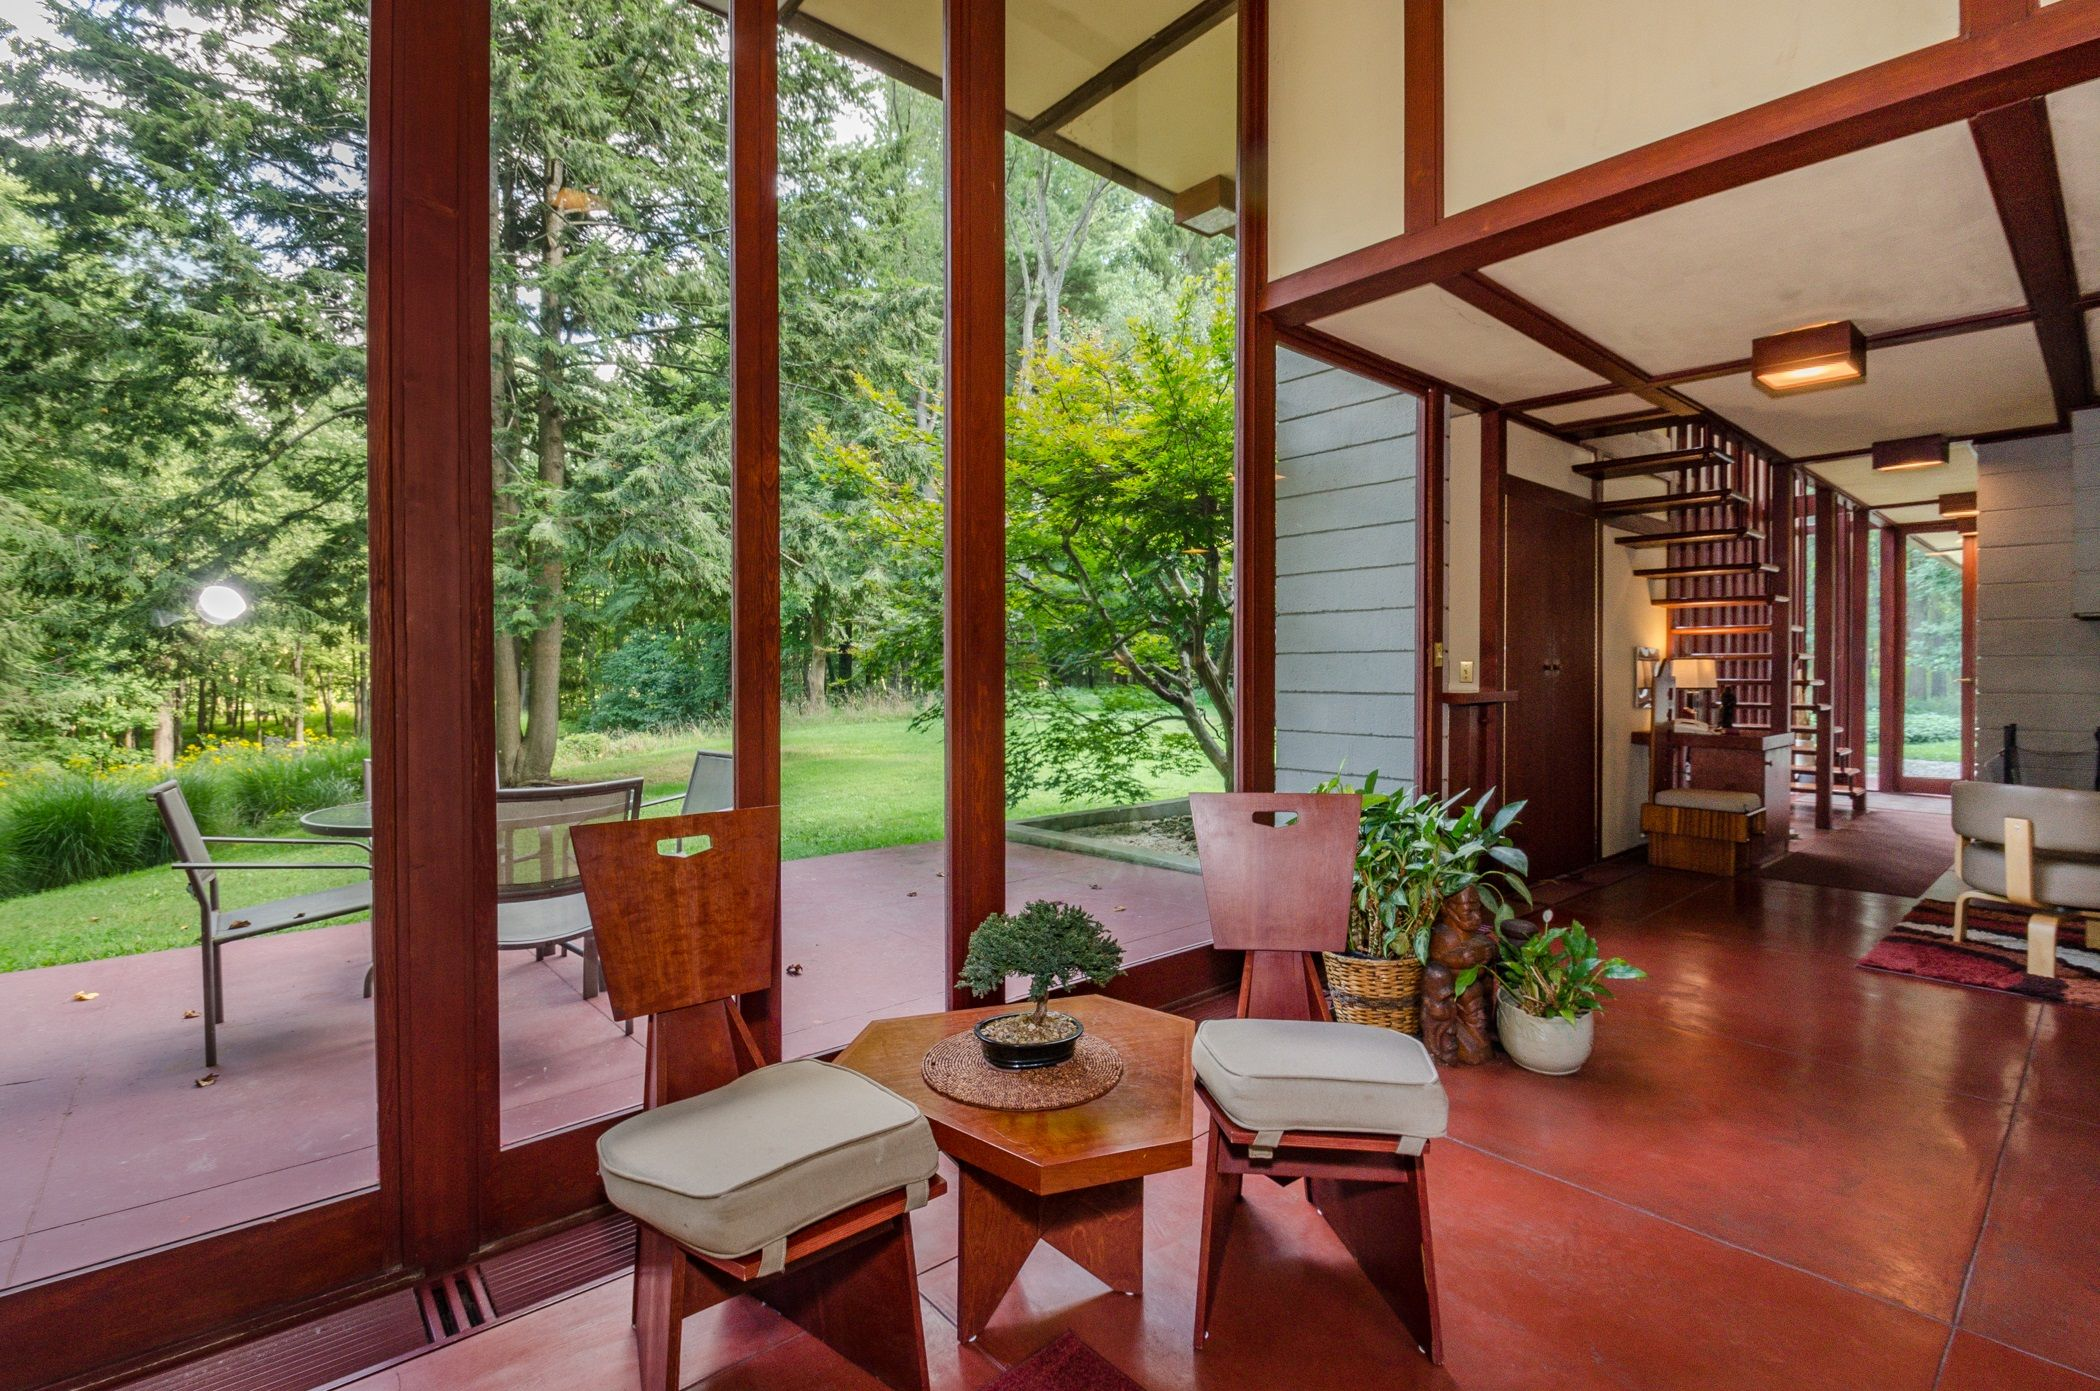 Frank Lloyd Wright Home With Floating Staircase Is For Sale The Louis Penfield Frank Lloyd Wright Design Frank Lloyd Wright Homes Frank Lloyd Wright Interior